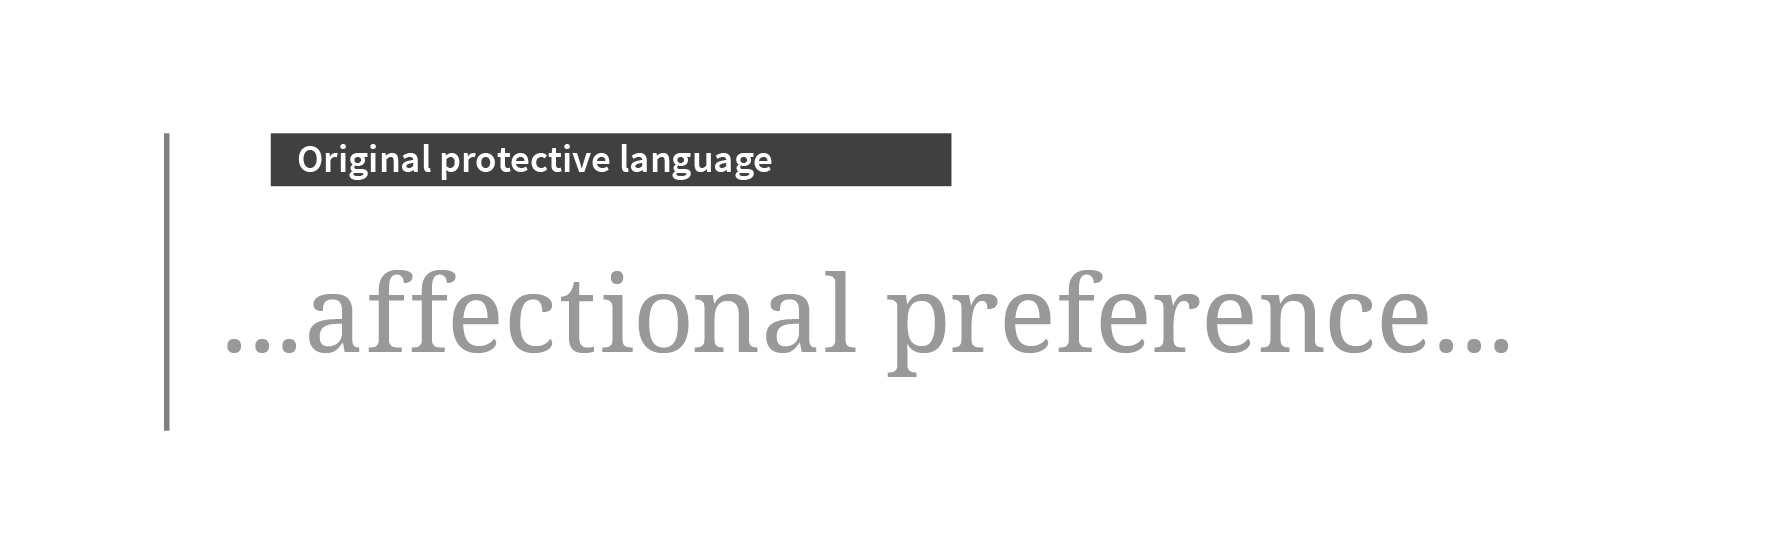 affectional preference in large type